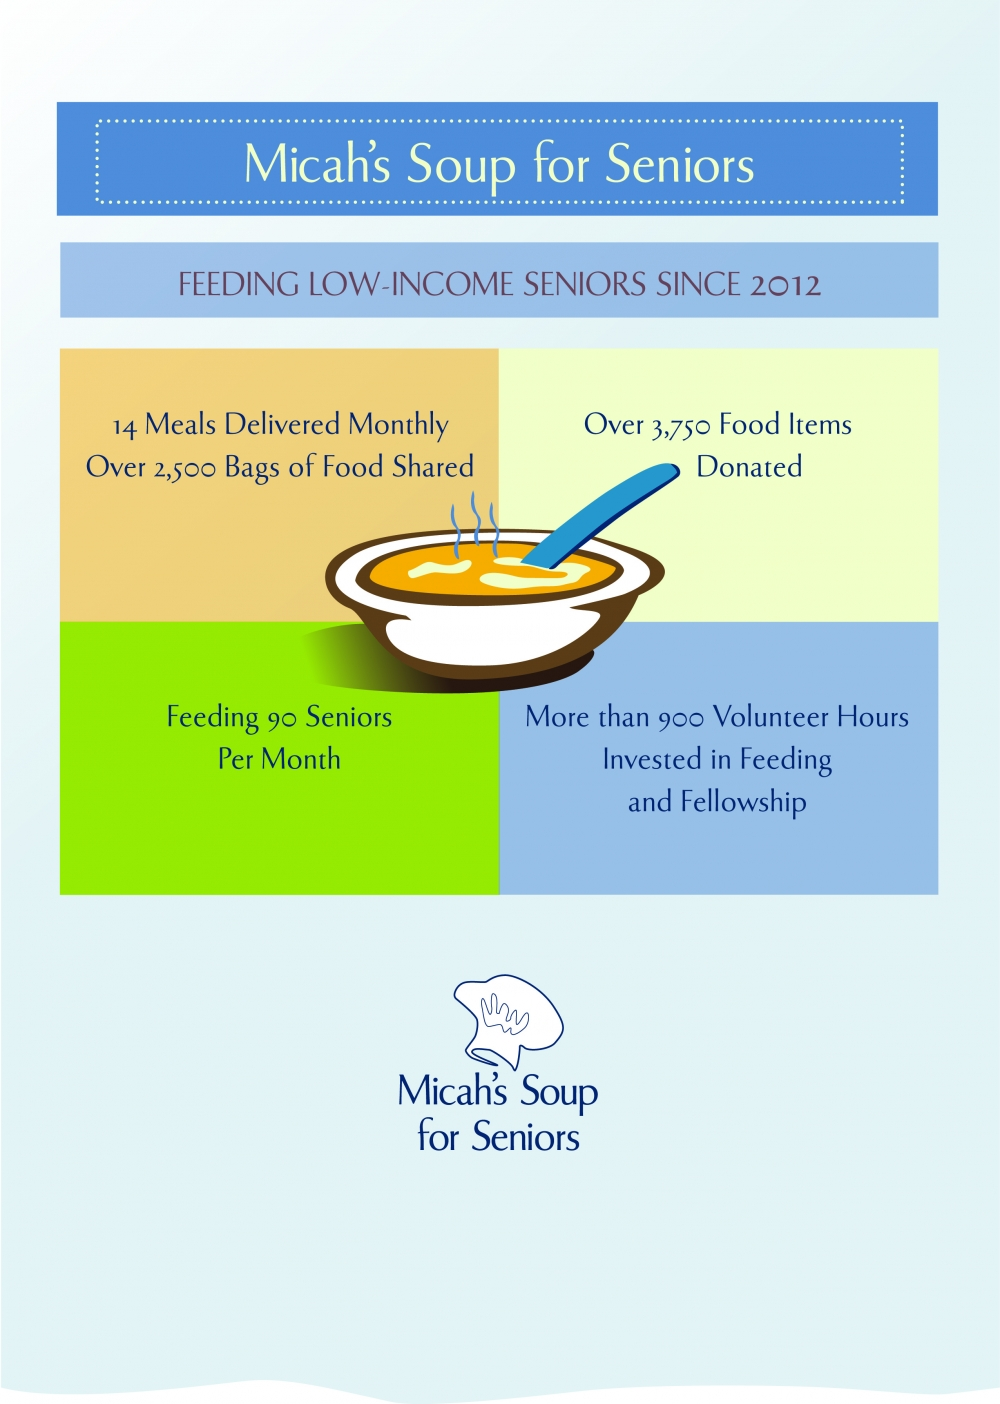 2015 Micahs Soup for Seniors infographic